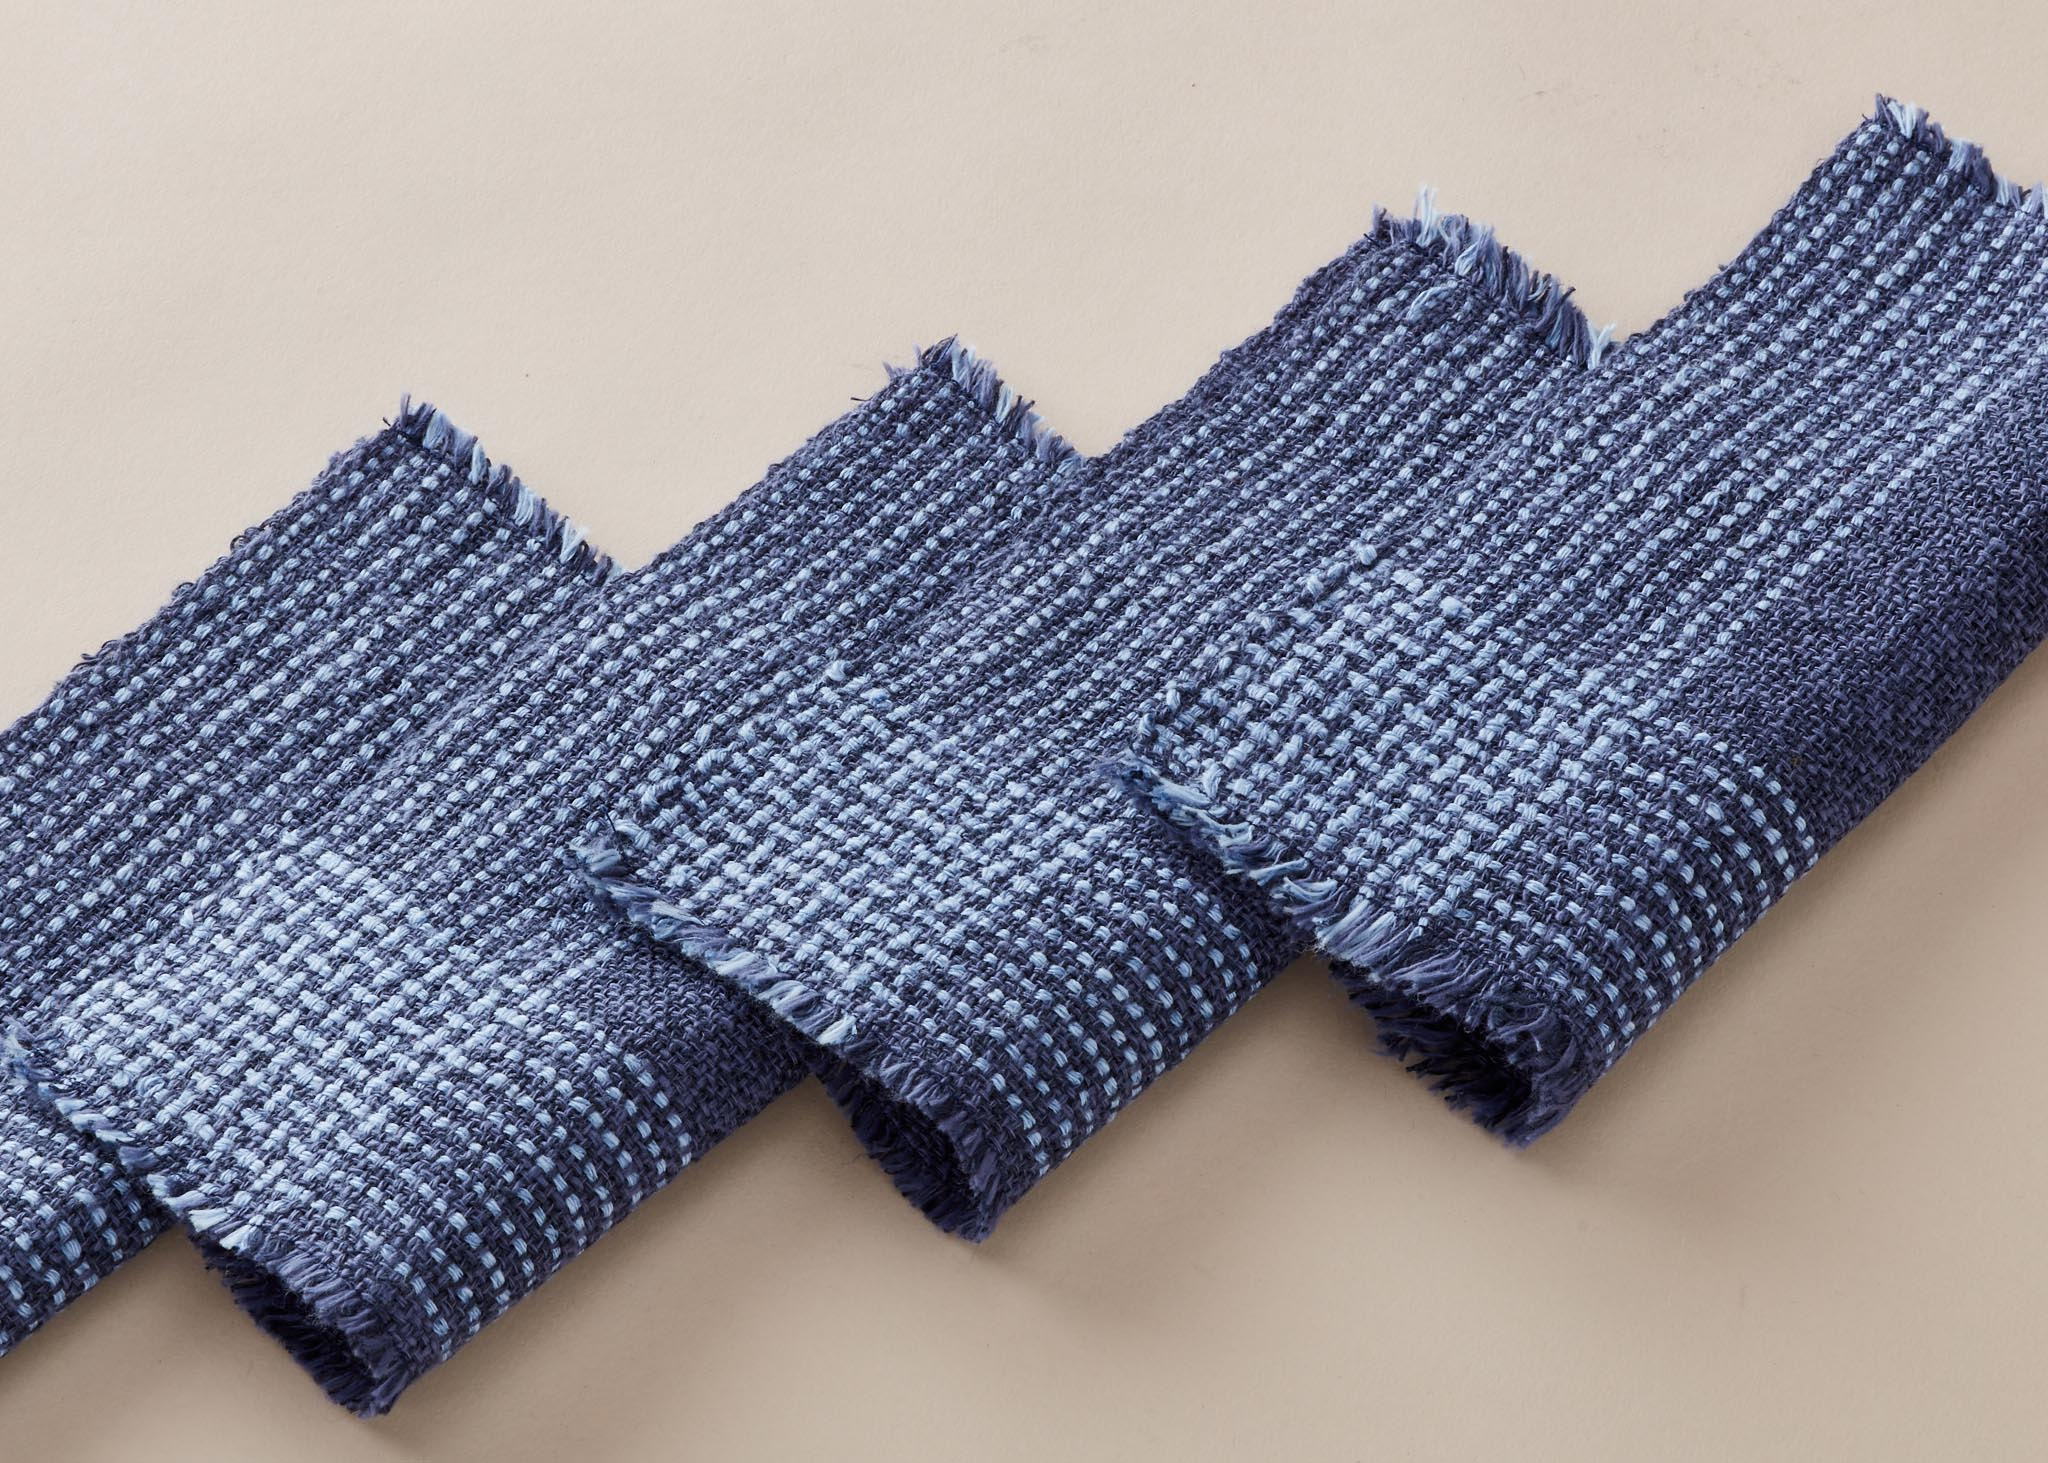 Free Rigid Heddle Weaving Pattern Color and Weave Napkins